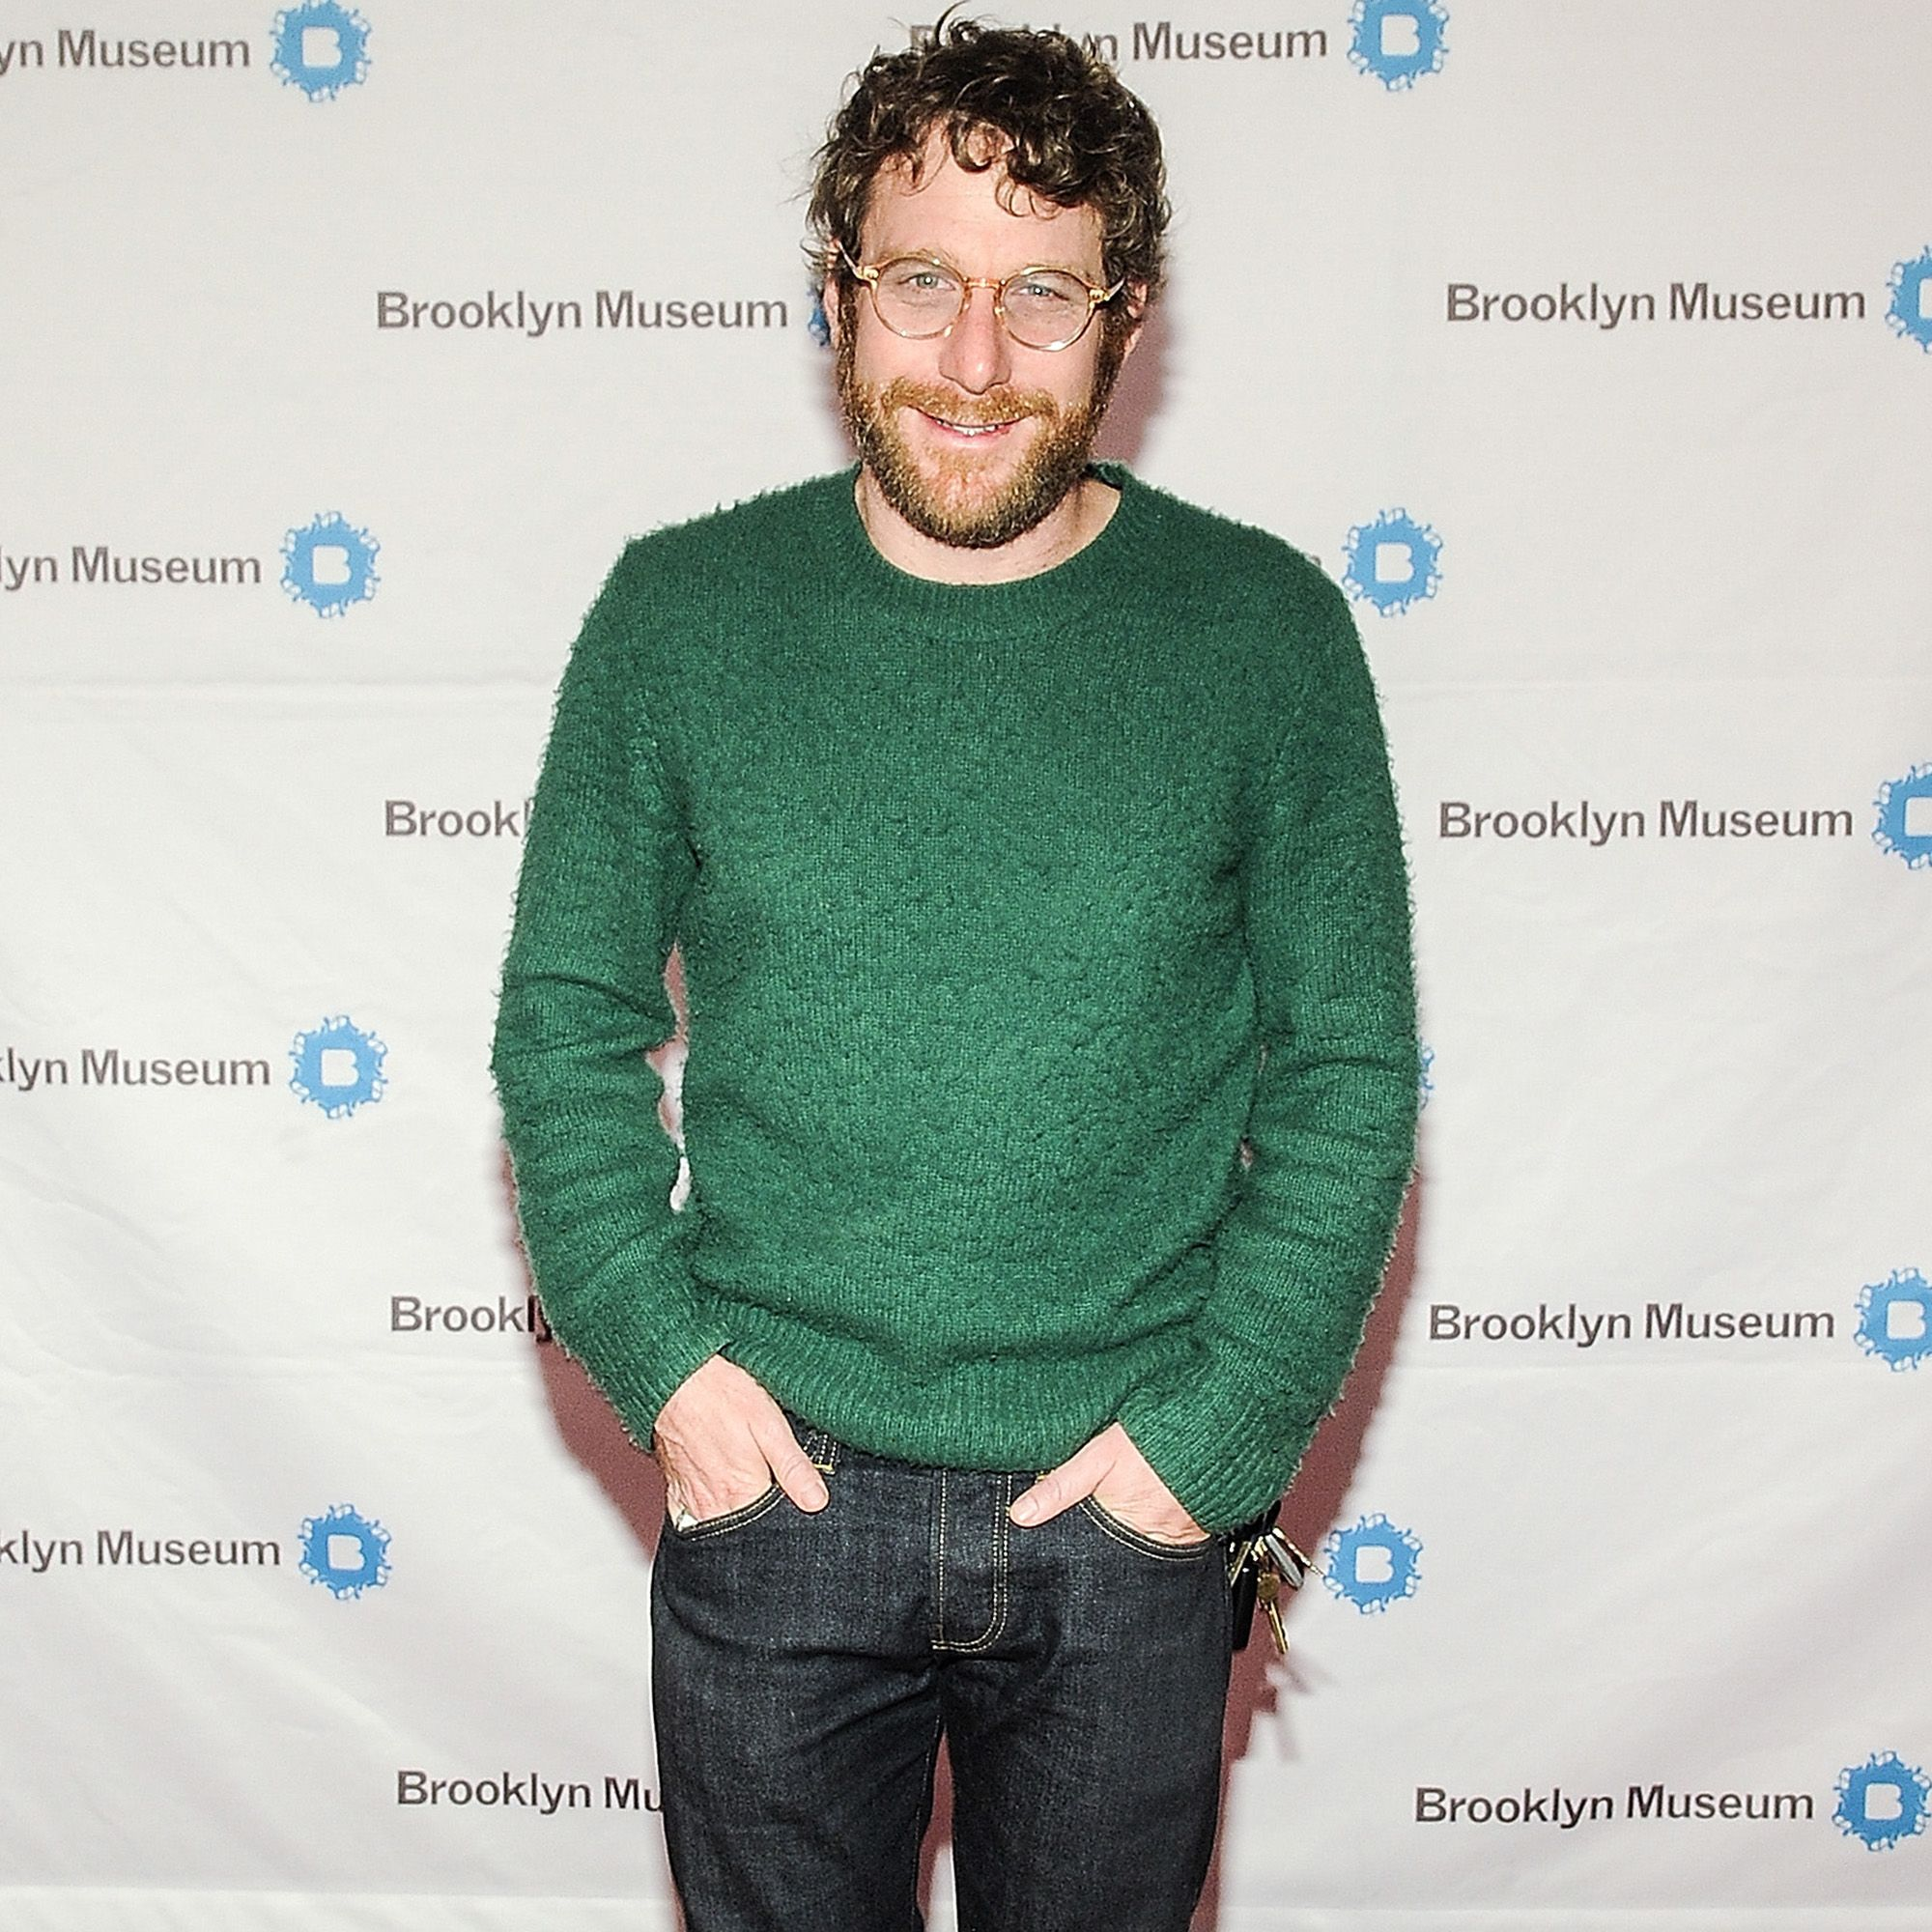 NEW YORK, NY - APRIL 15:  Dustin Yellin attends the 5th Annual Brooklyn Artists Ball at Brooklyn Museum on April 15, 2015 in New York City.  (Photo by Daniel Zuchnik/WireImage)